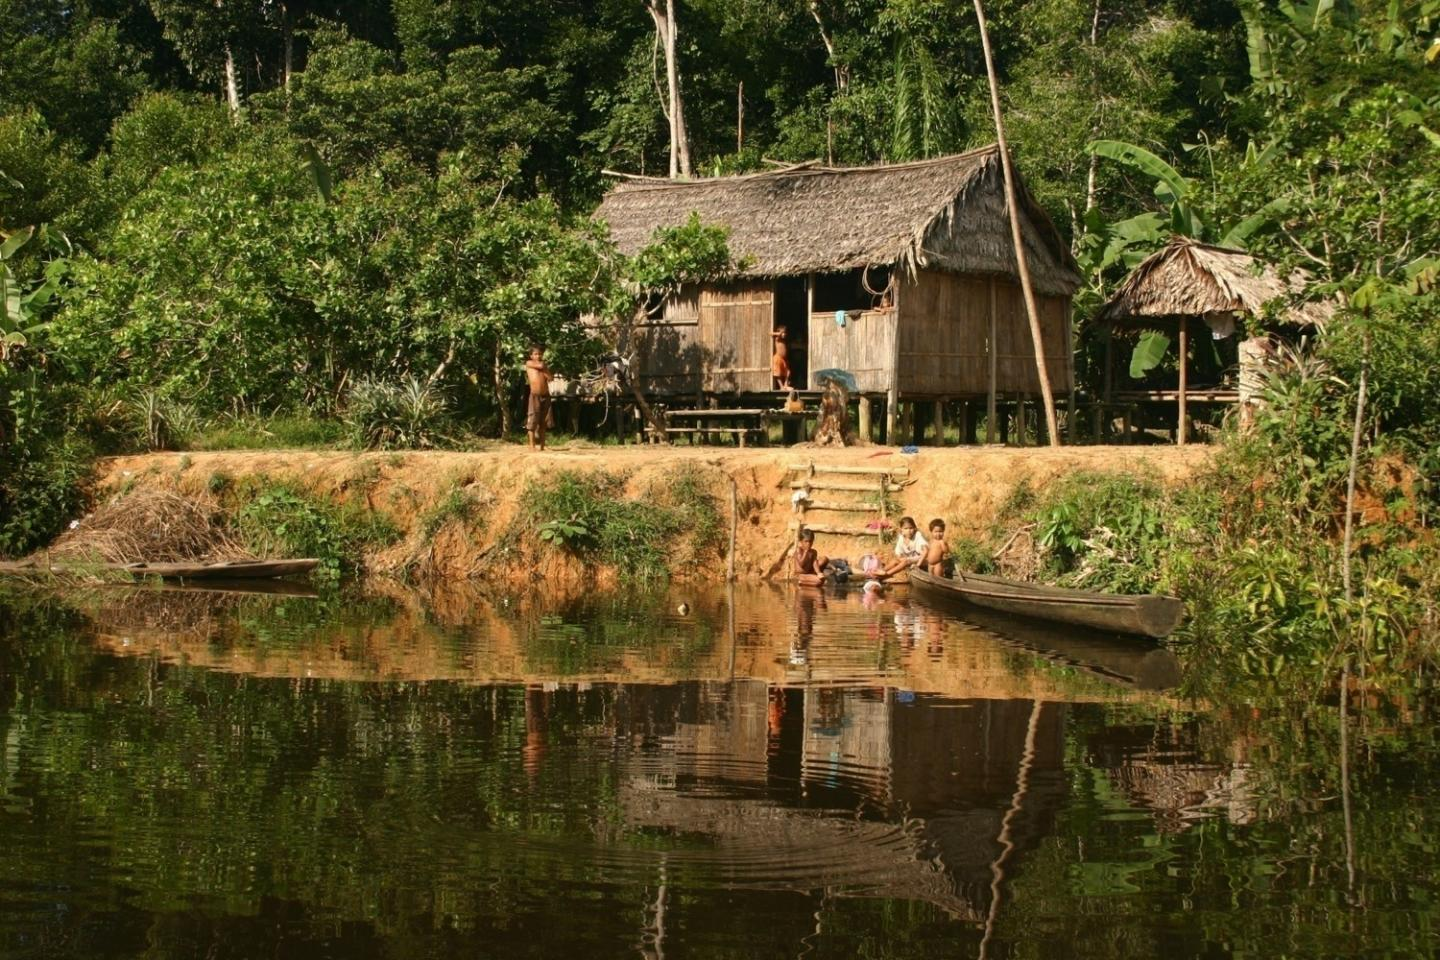 Forest-Proximate People in Amazonia State, Brazil